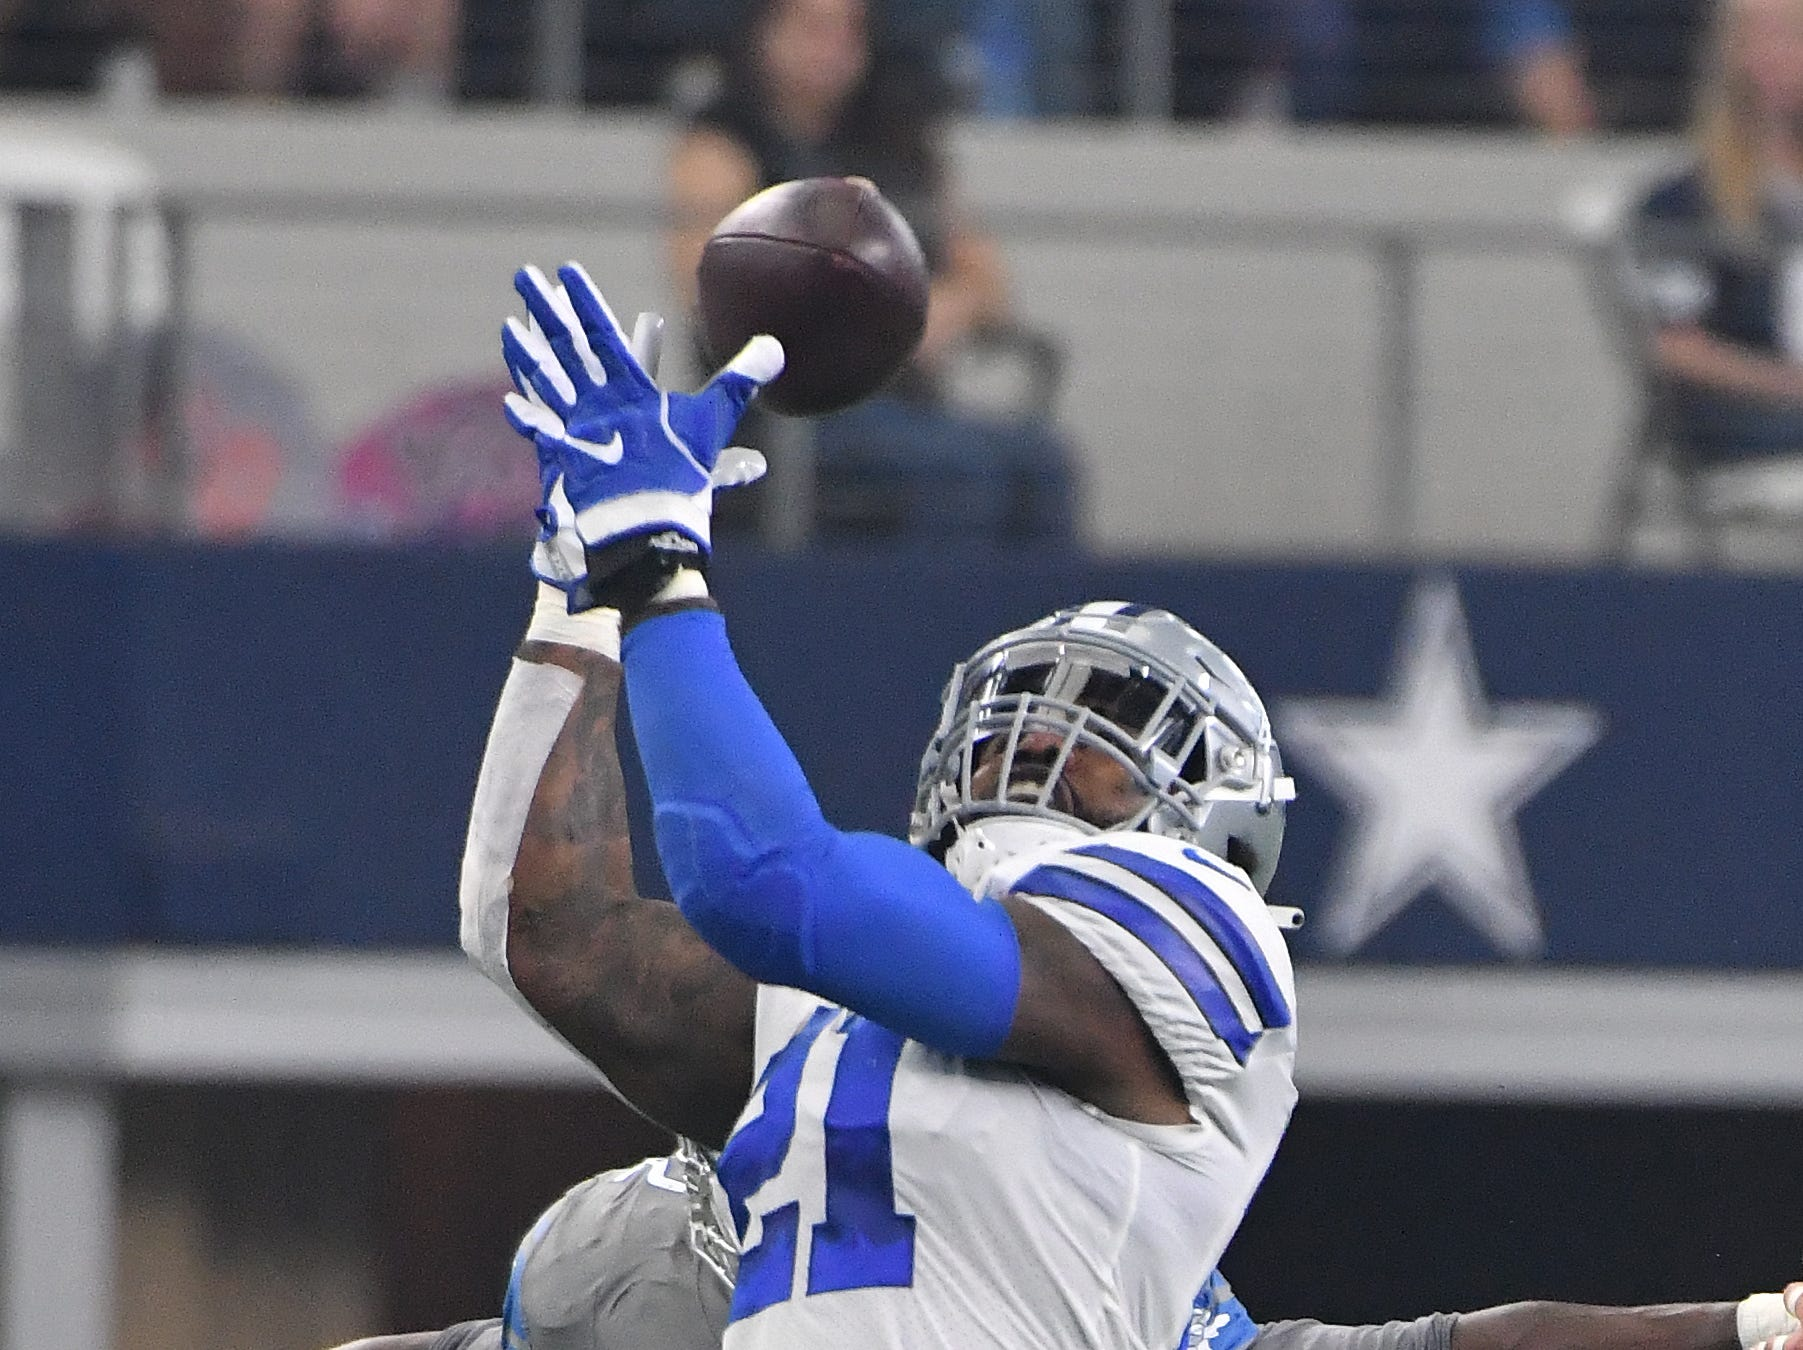 Cowboys' Ezekiel Elliott can't hang onto an onver-the-shoulder pass in the third quarter but made up for it late in the fourth quarter.